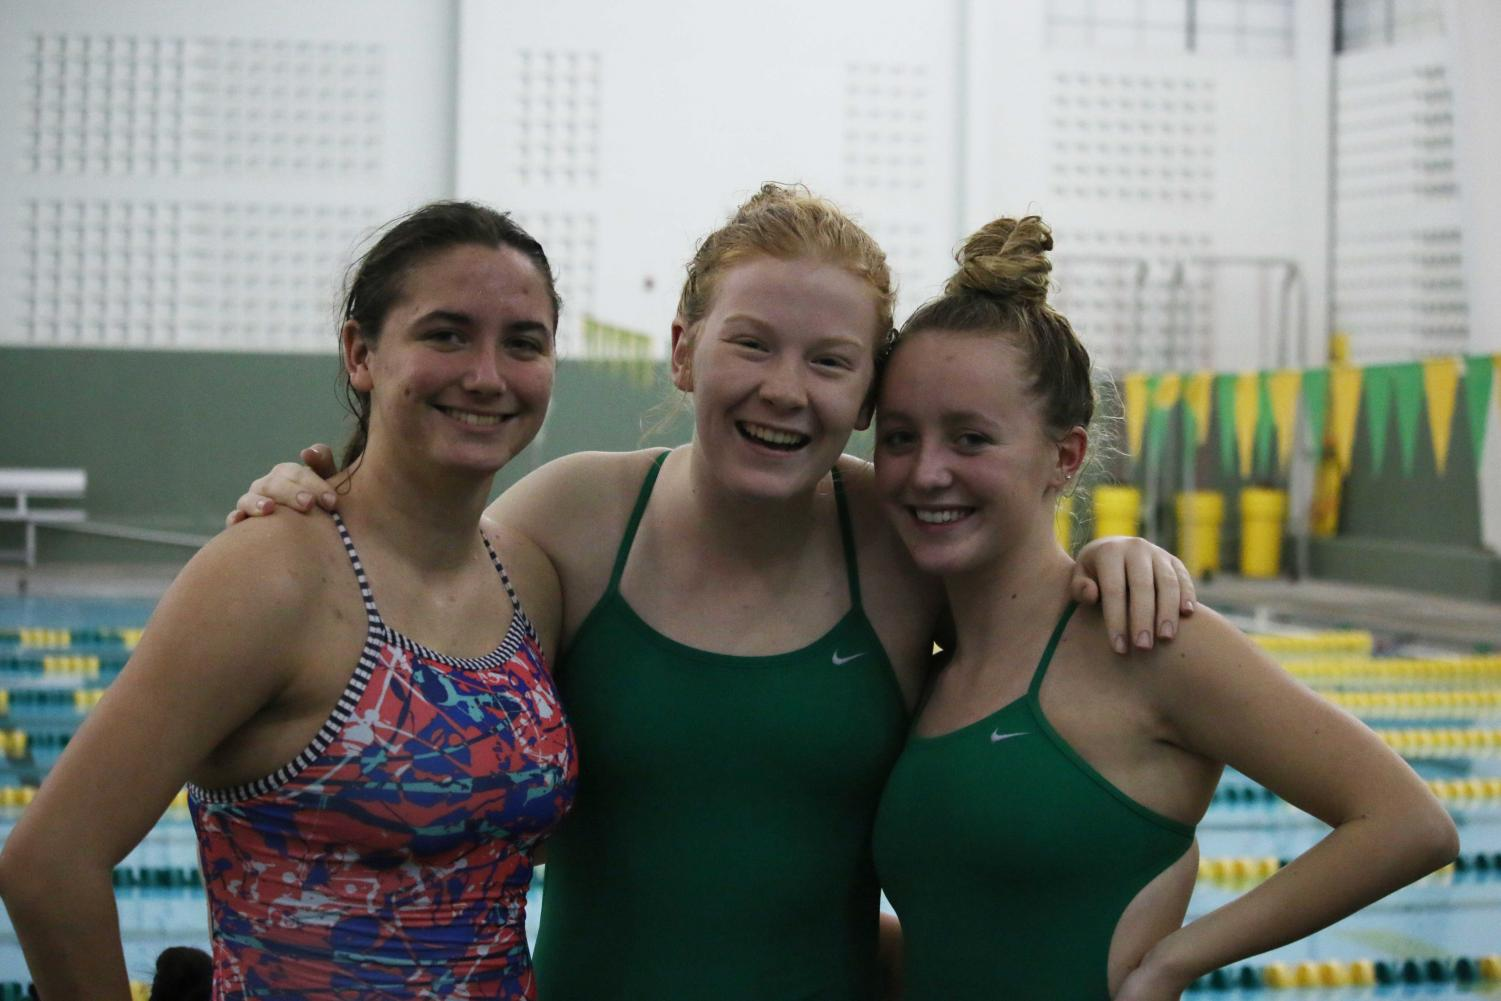 Jennie Weaver (11), Natalie Evans (11) and Samantha Hurst (12) after completing their events.